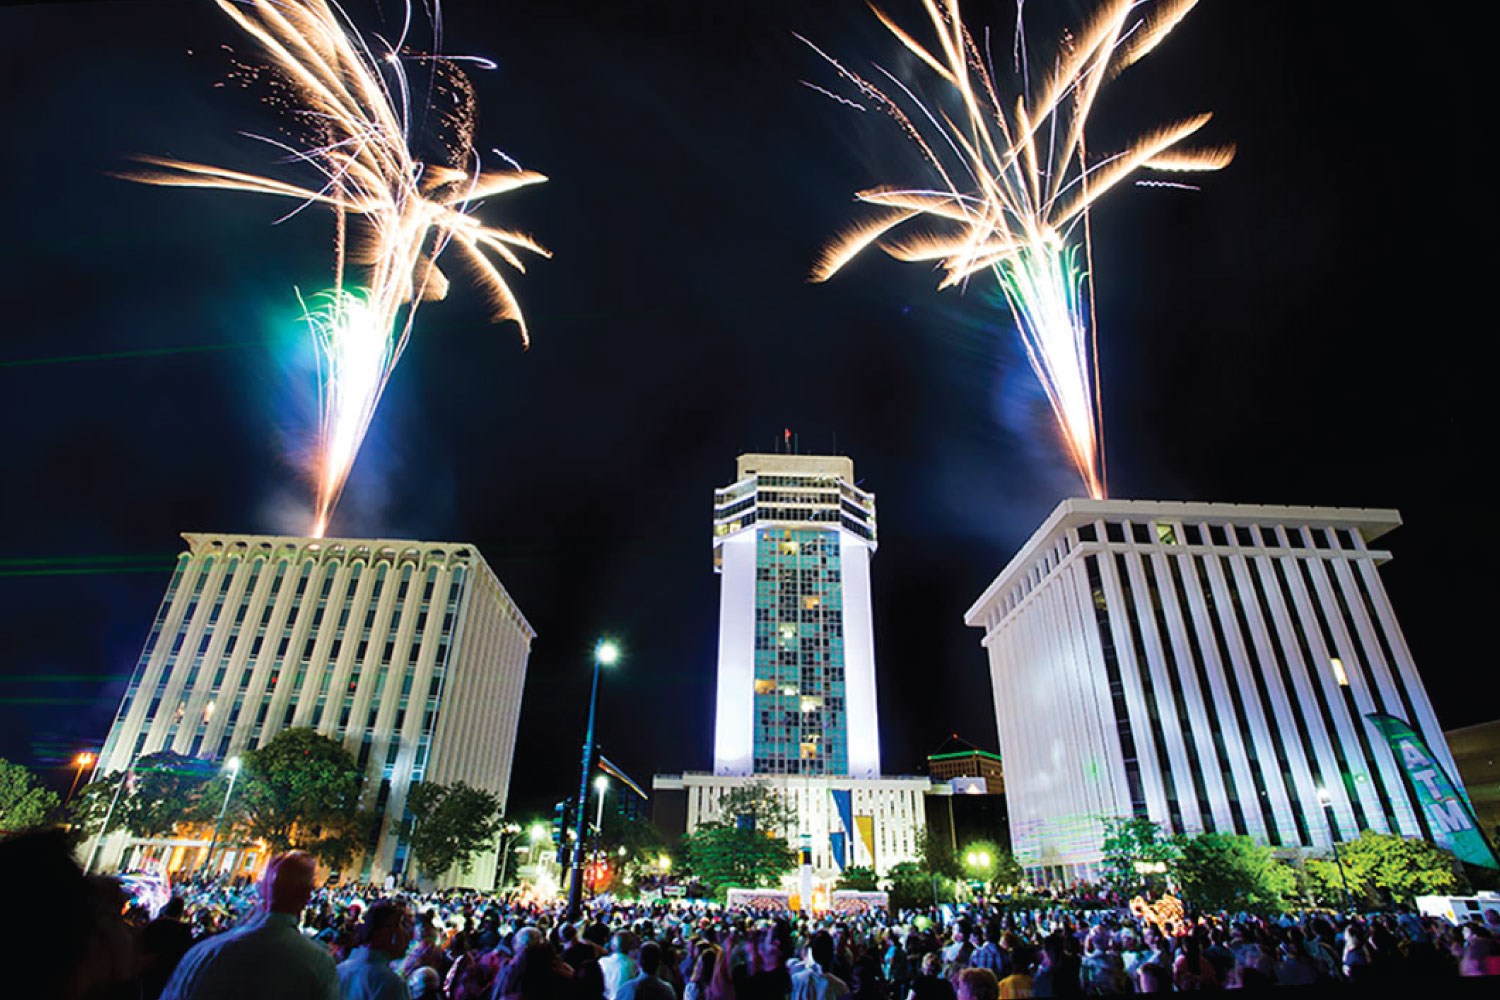 WICHITA RIVERFEST FIREWORKS